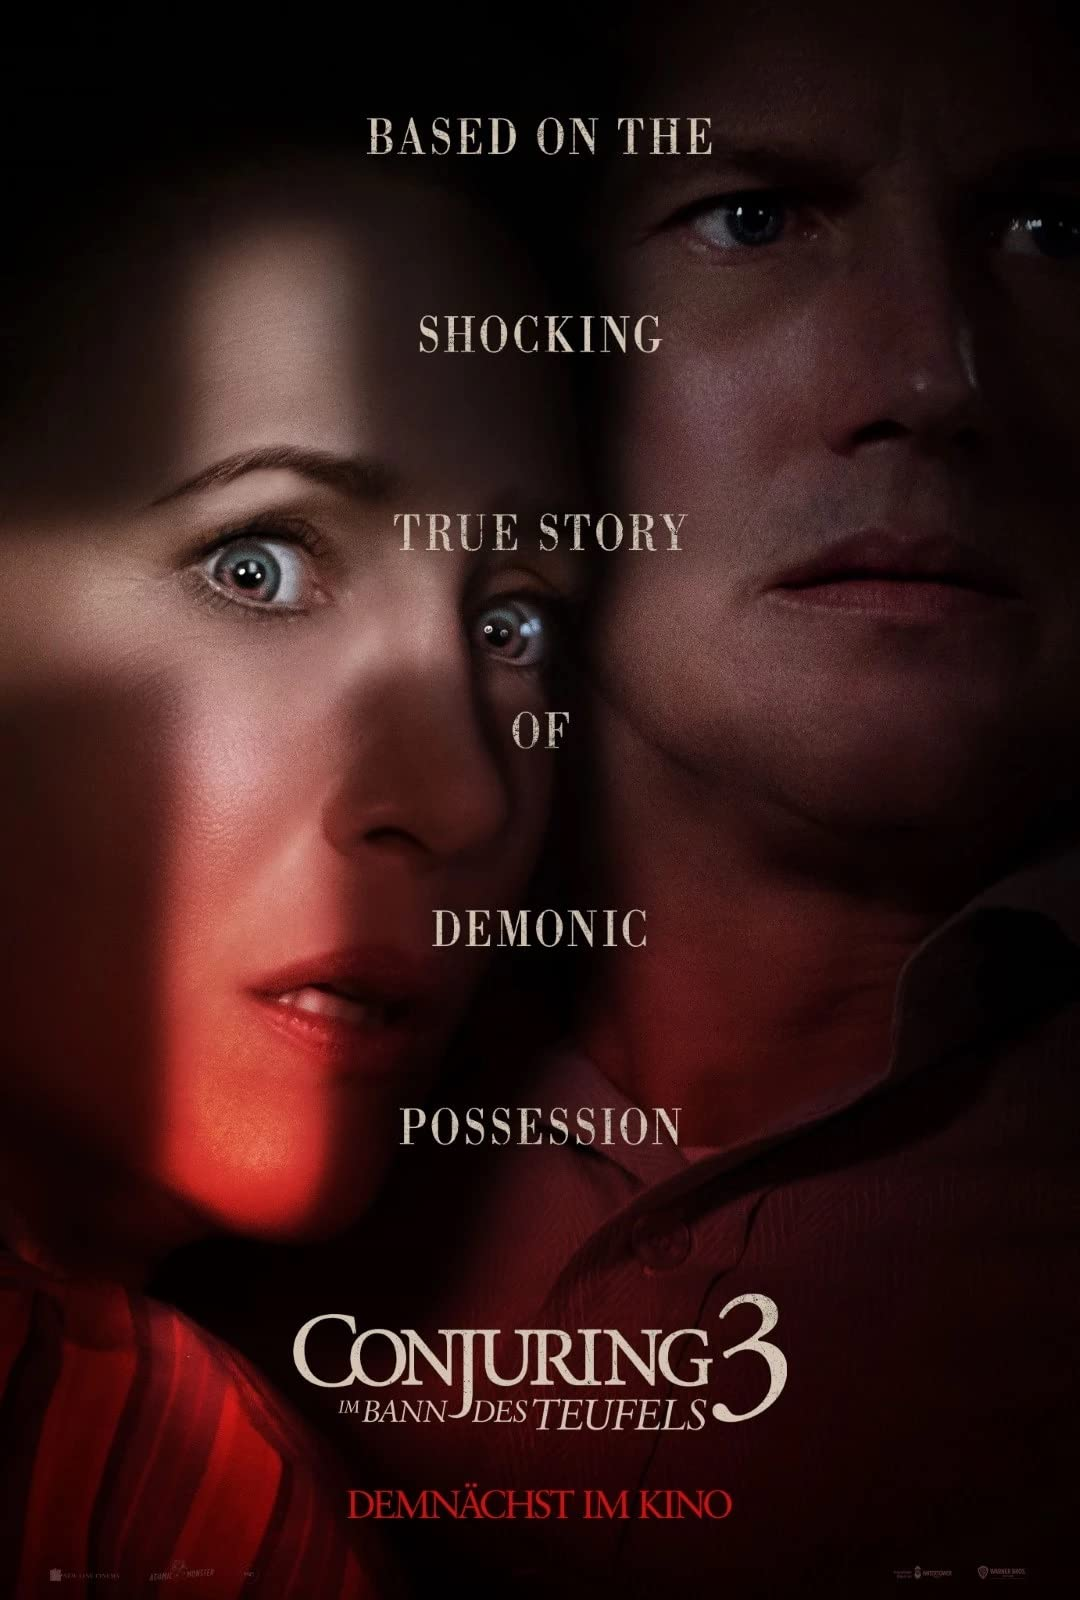 The Conjuring 3: The Devil Made Me Do It 2021 English 1080p HDRip x264 AAC 5.1 ESubs Full Hollywood Movie [1.8GB]